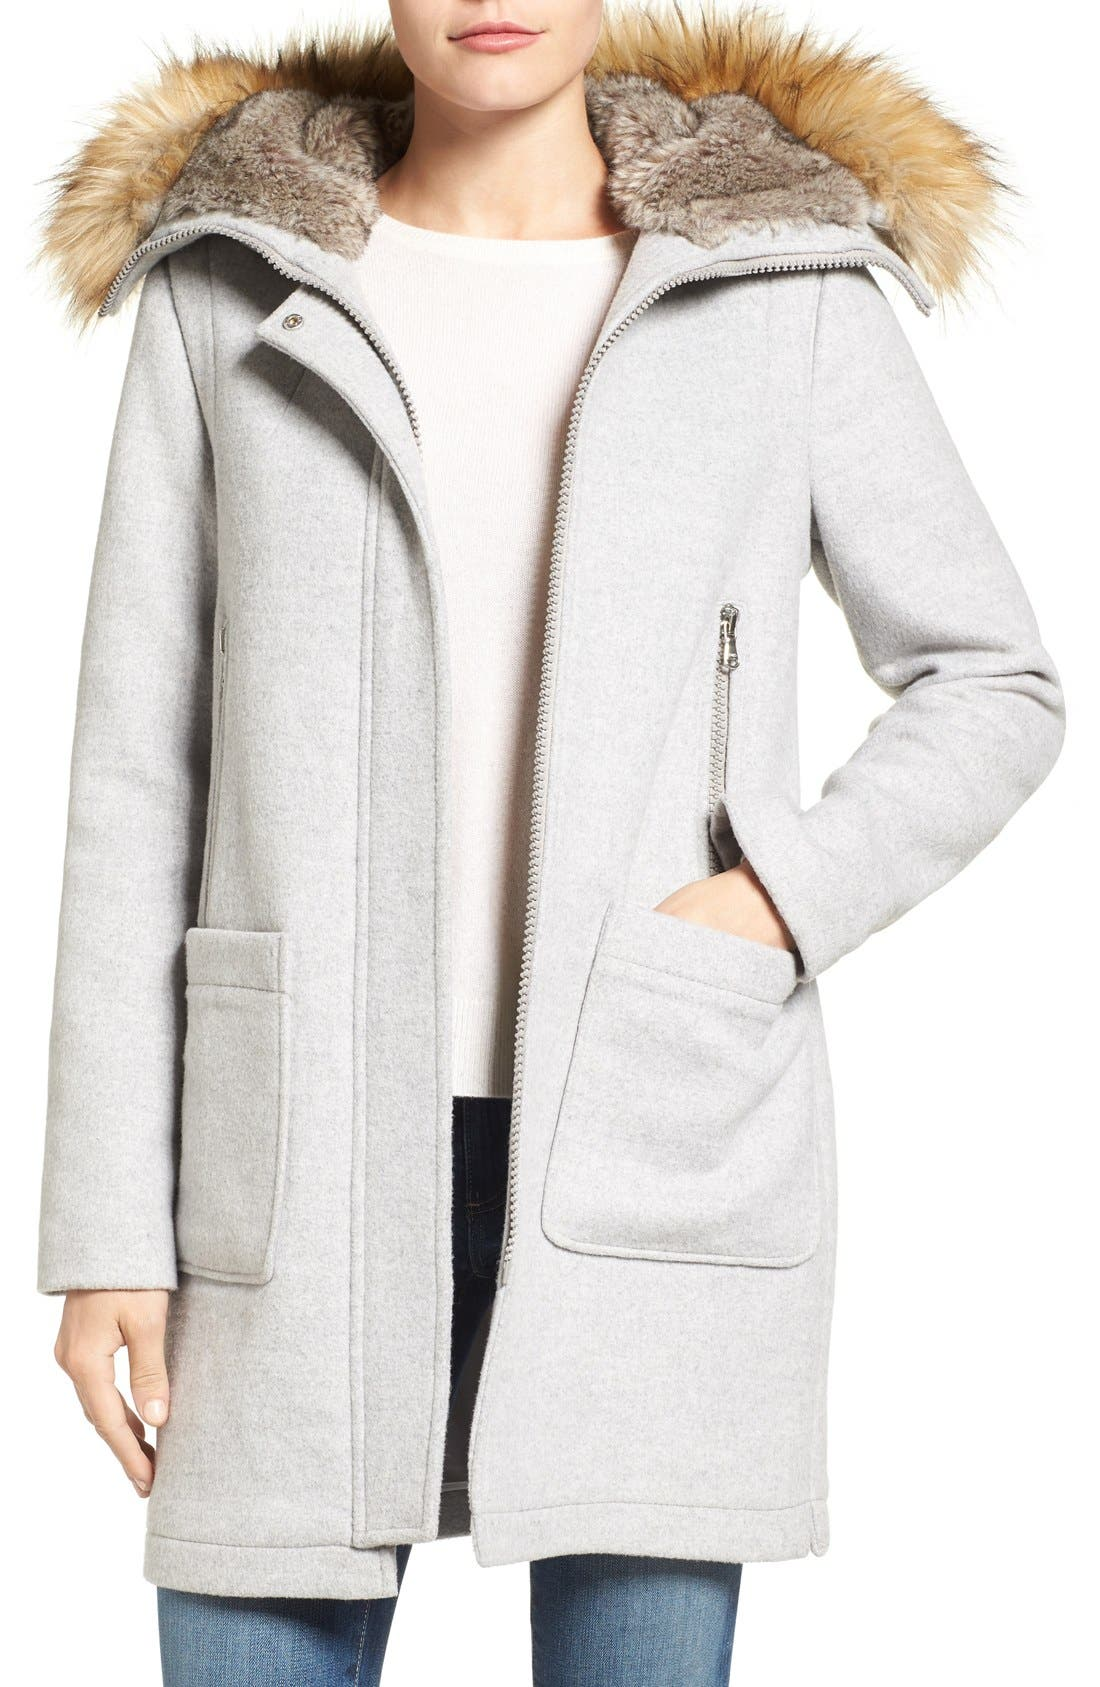 Alternate Image 1 Selected - Vince Camuto Wool Blend Duffle Coat with Faux Fur Trim Hood